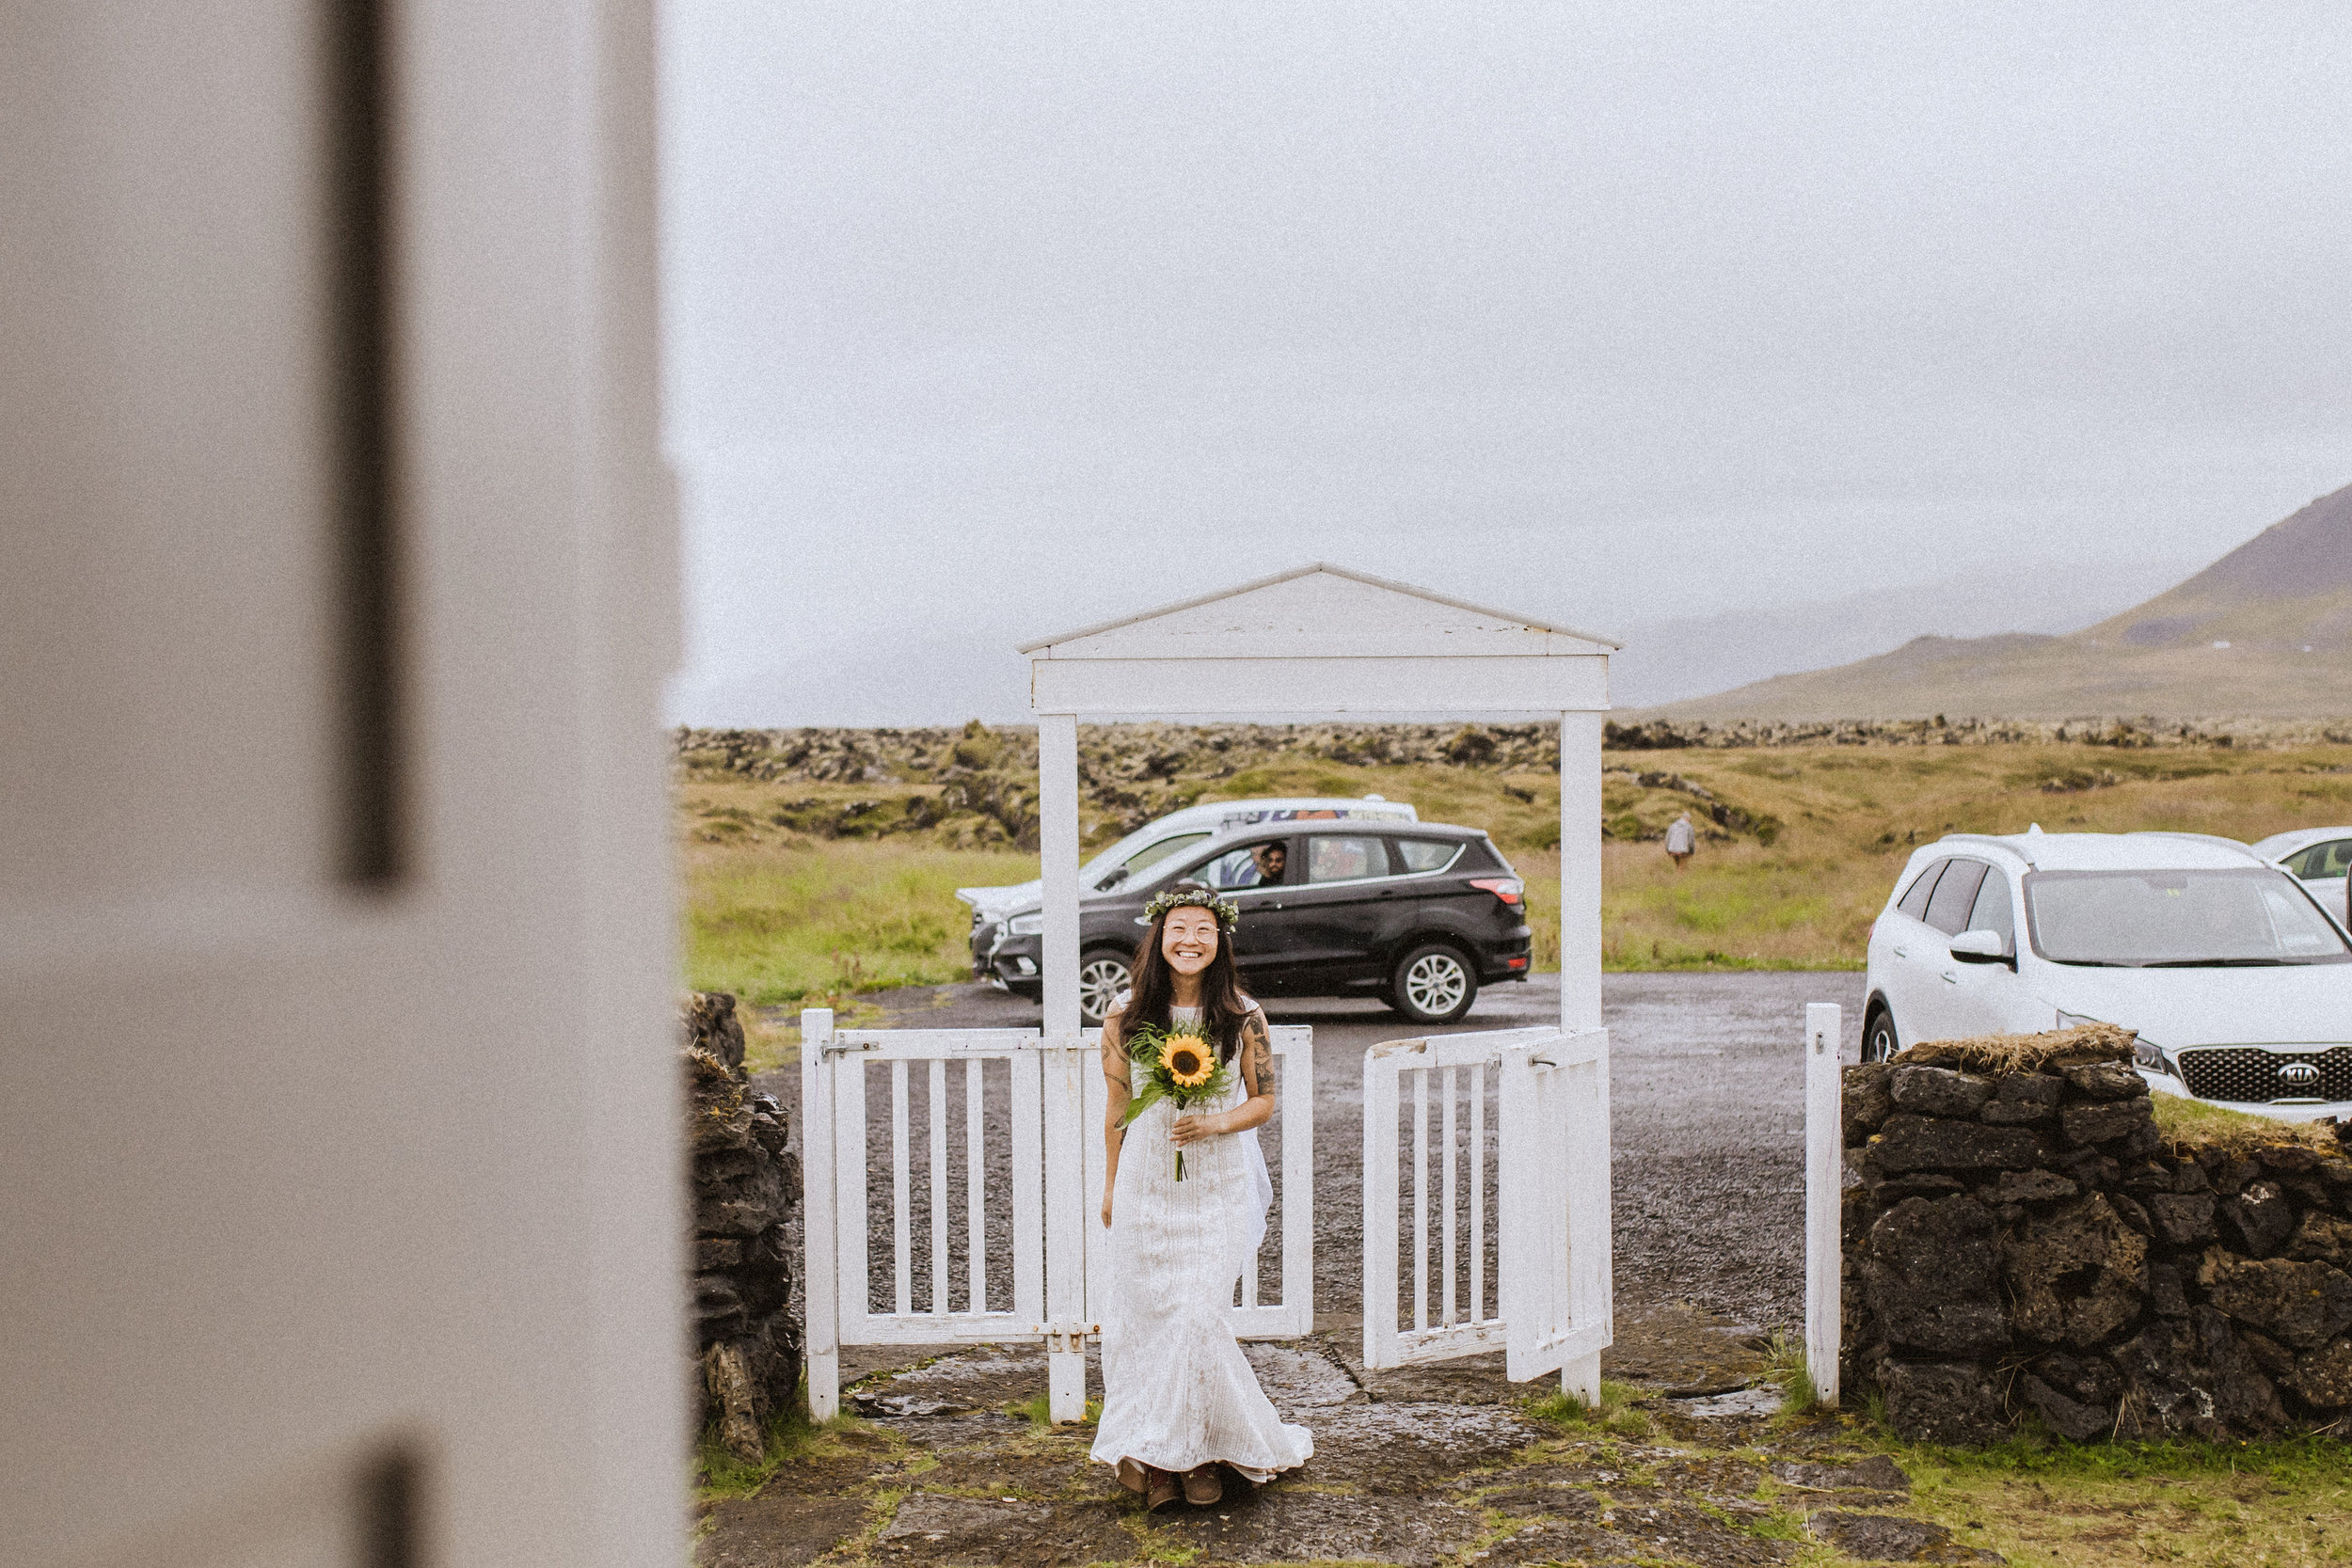 Best-wedding-photographer-in-iceland-kristin-maria13.jpg